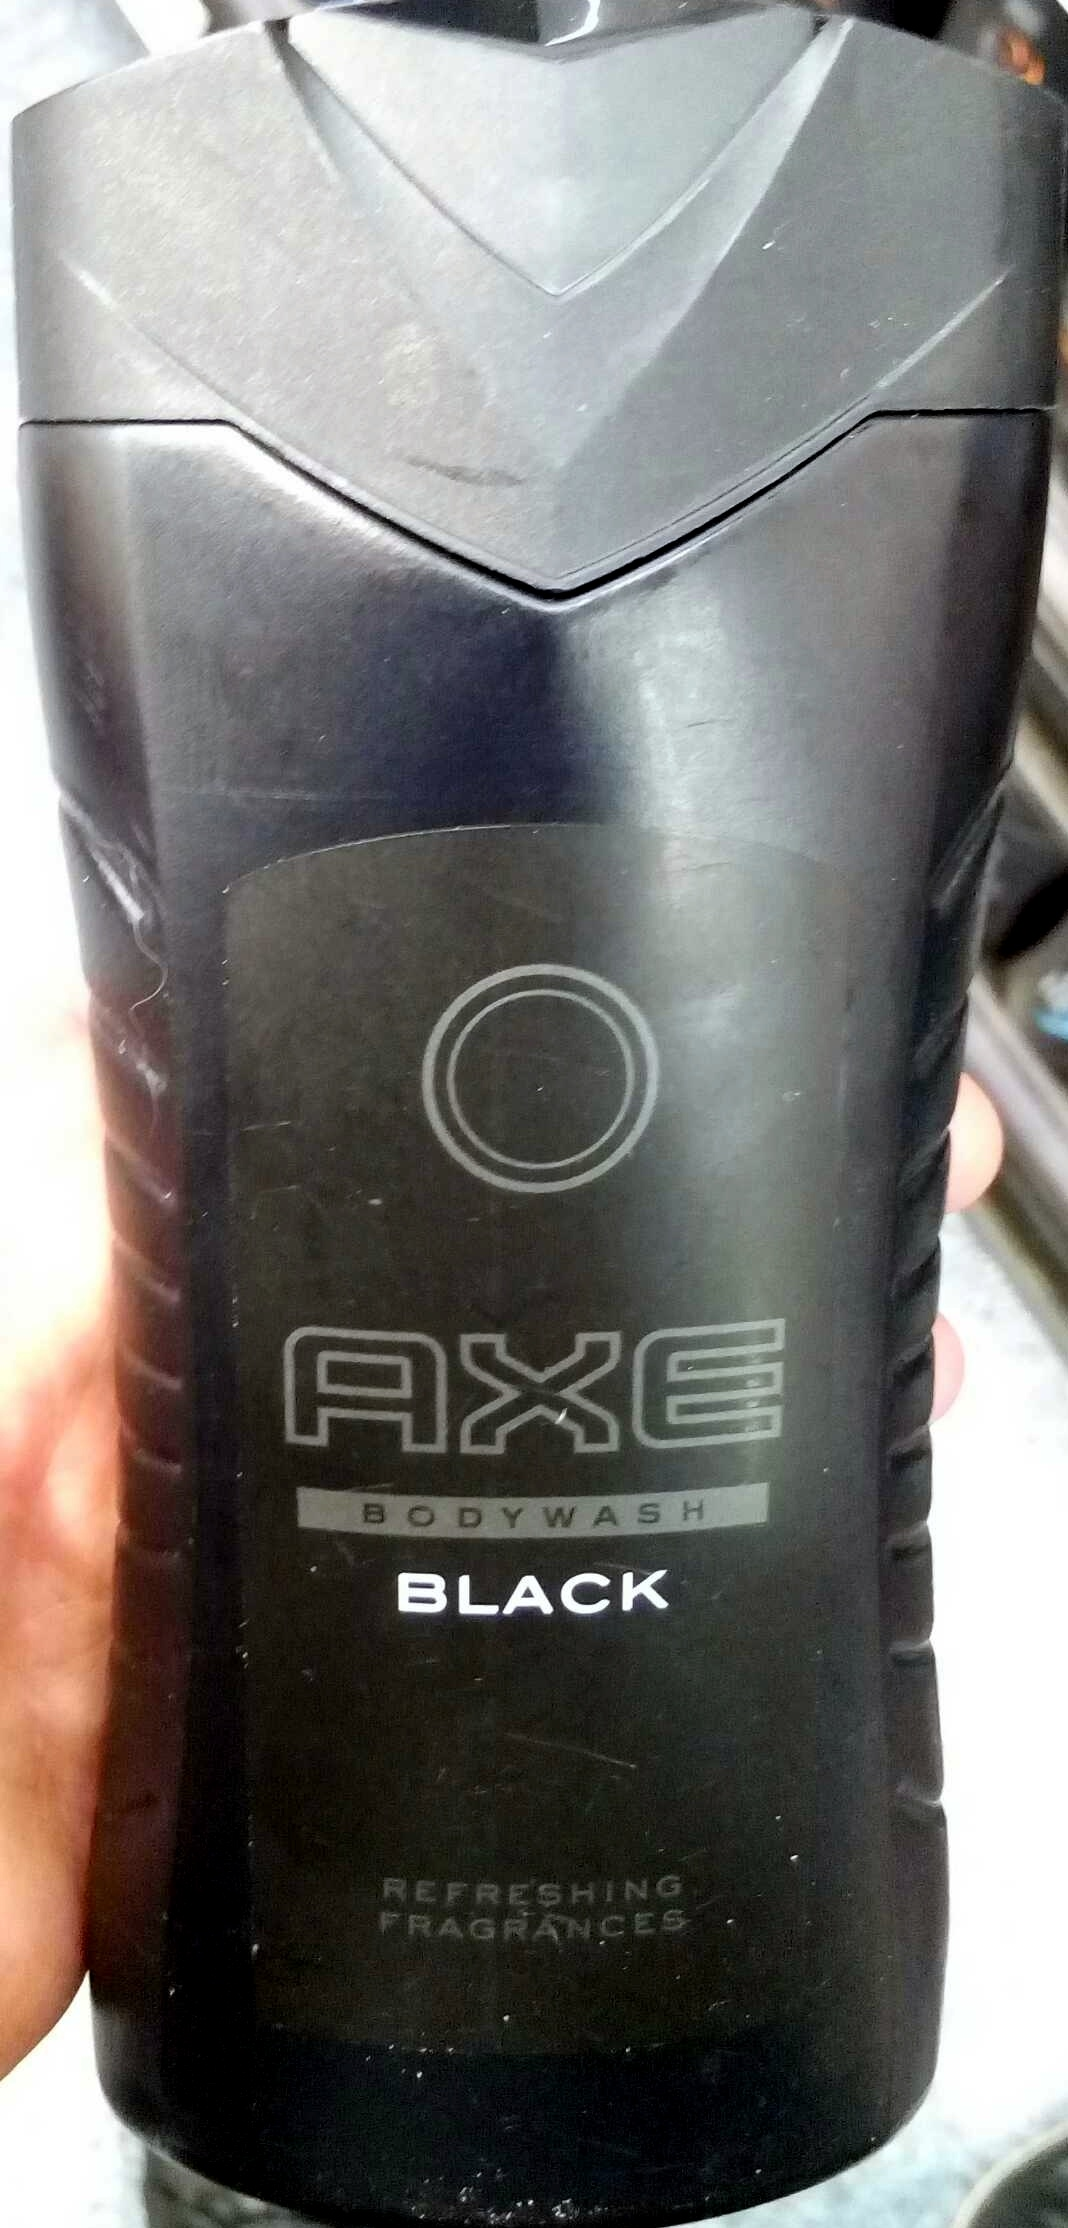 Axe black - Product